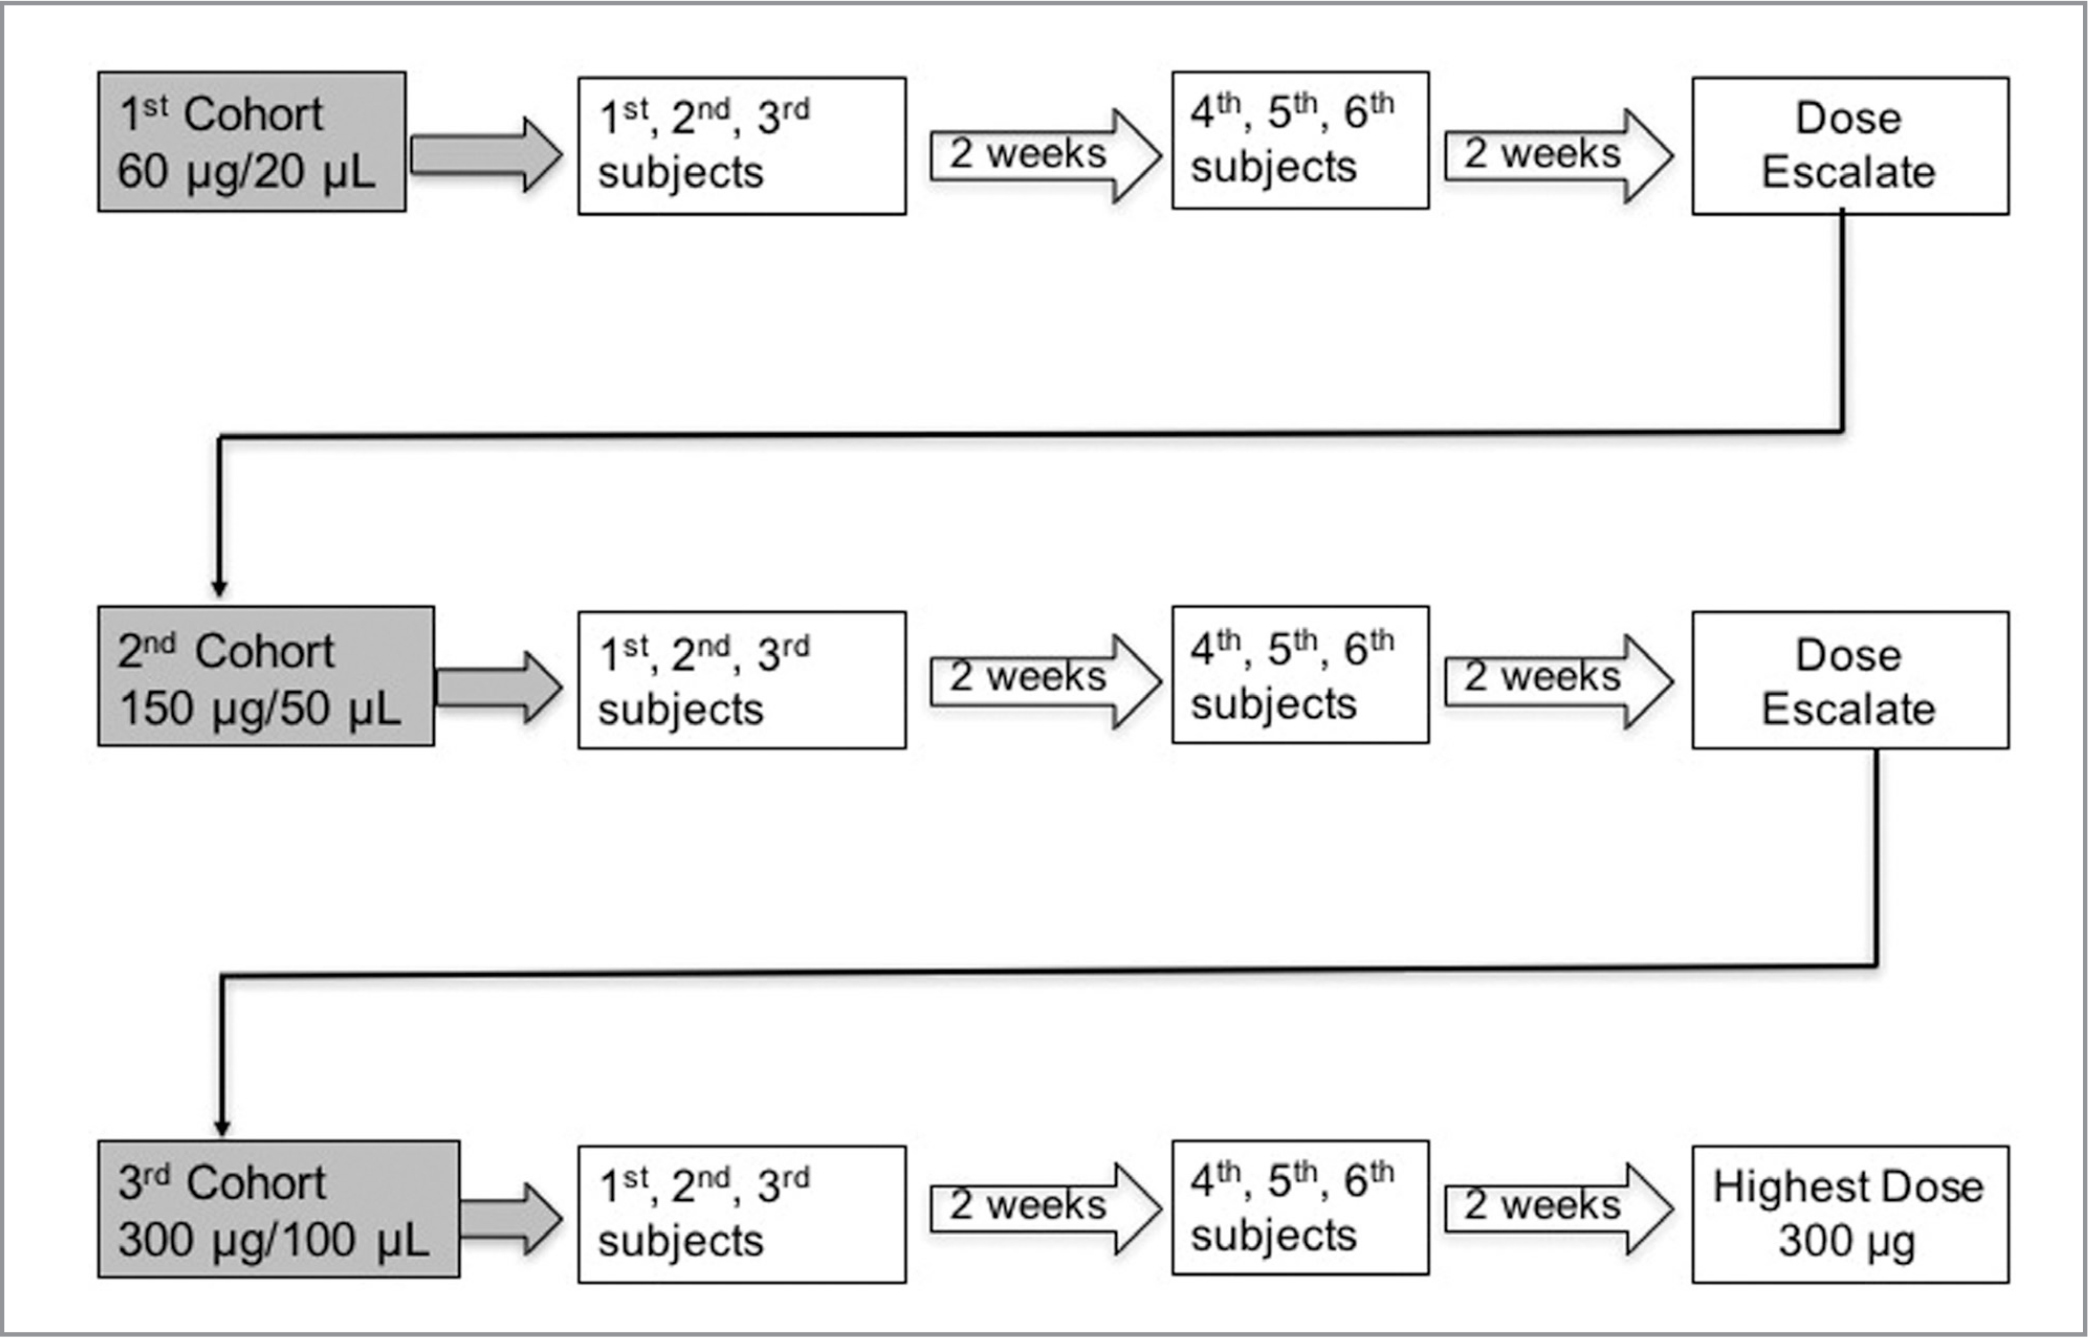 Schema of sequential enrollment into the phase 1 dose-escalation study. Six subjects were enrolled sequentially in each of the three dosing cohorts and received an intravitreal injection of different volumes of 3 mg/mL solution of ICON-1. The first cohort received a single injection of 20 μL/60 μg ICON-1, the second cohort received a single injection of 50 μL/150 μg ICON-1, and the third cohort received a single injection of 100 μL/300 μg ICON-1. The initial three subjects in each cohort had established neovascular age-related macular degeneration and could have had prior therapy, whereas subjects four, five, and six were more recently diagnosed and treatment-naïve. The maximum tolerated dose was defined as the dose at which no more than one of six subjects had a significant ocular safety event.